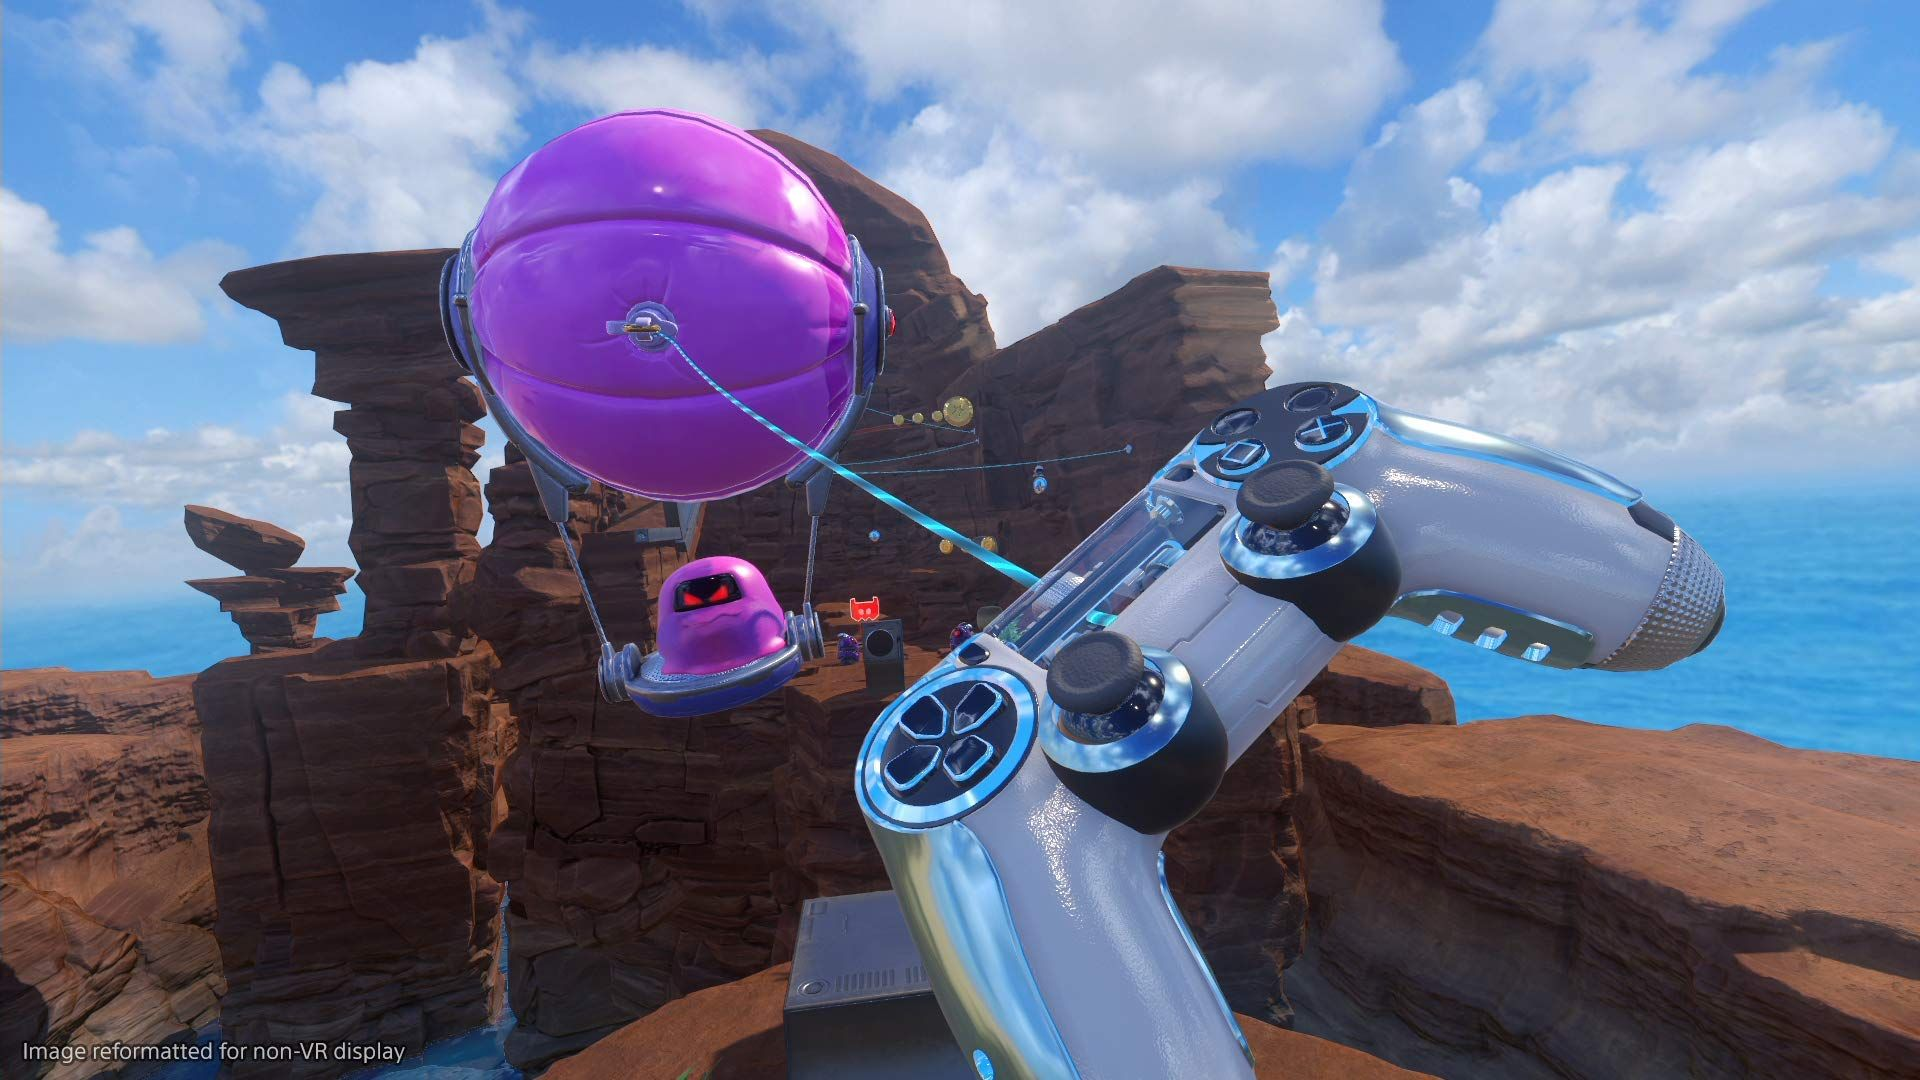 Moss Bundle Astro Bot Rescue Mission PlayStation VR